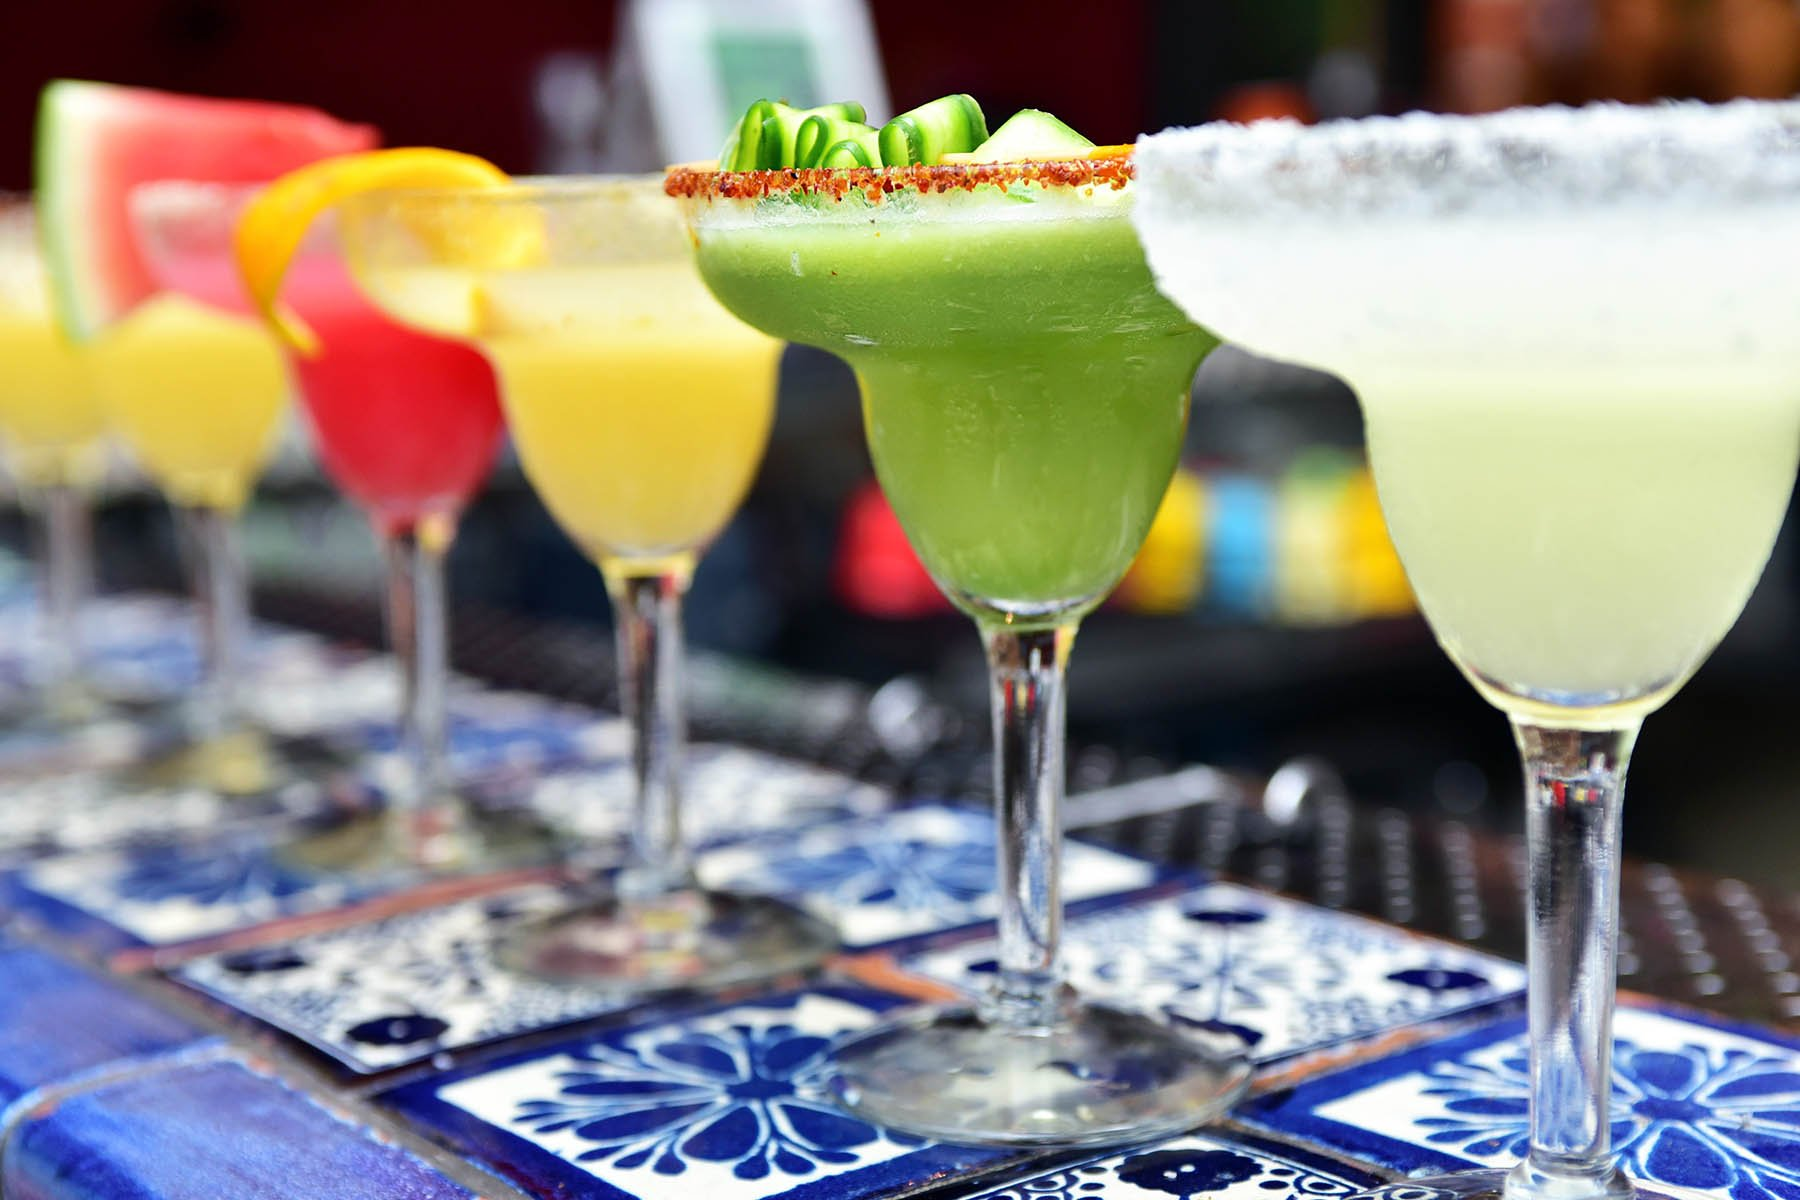 A row of frozen margaritas in cocktail glasses on a bar